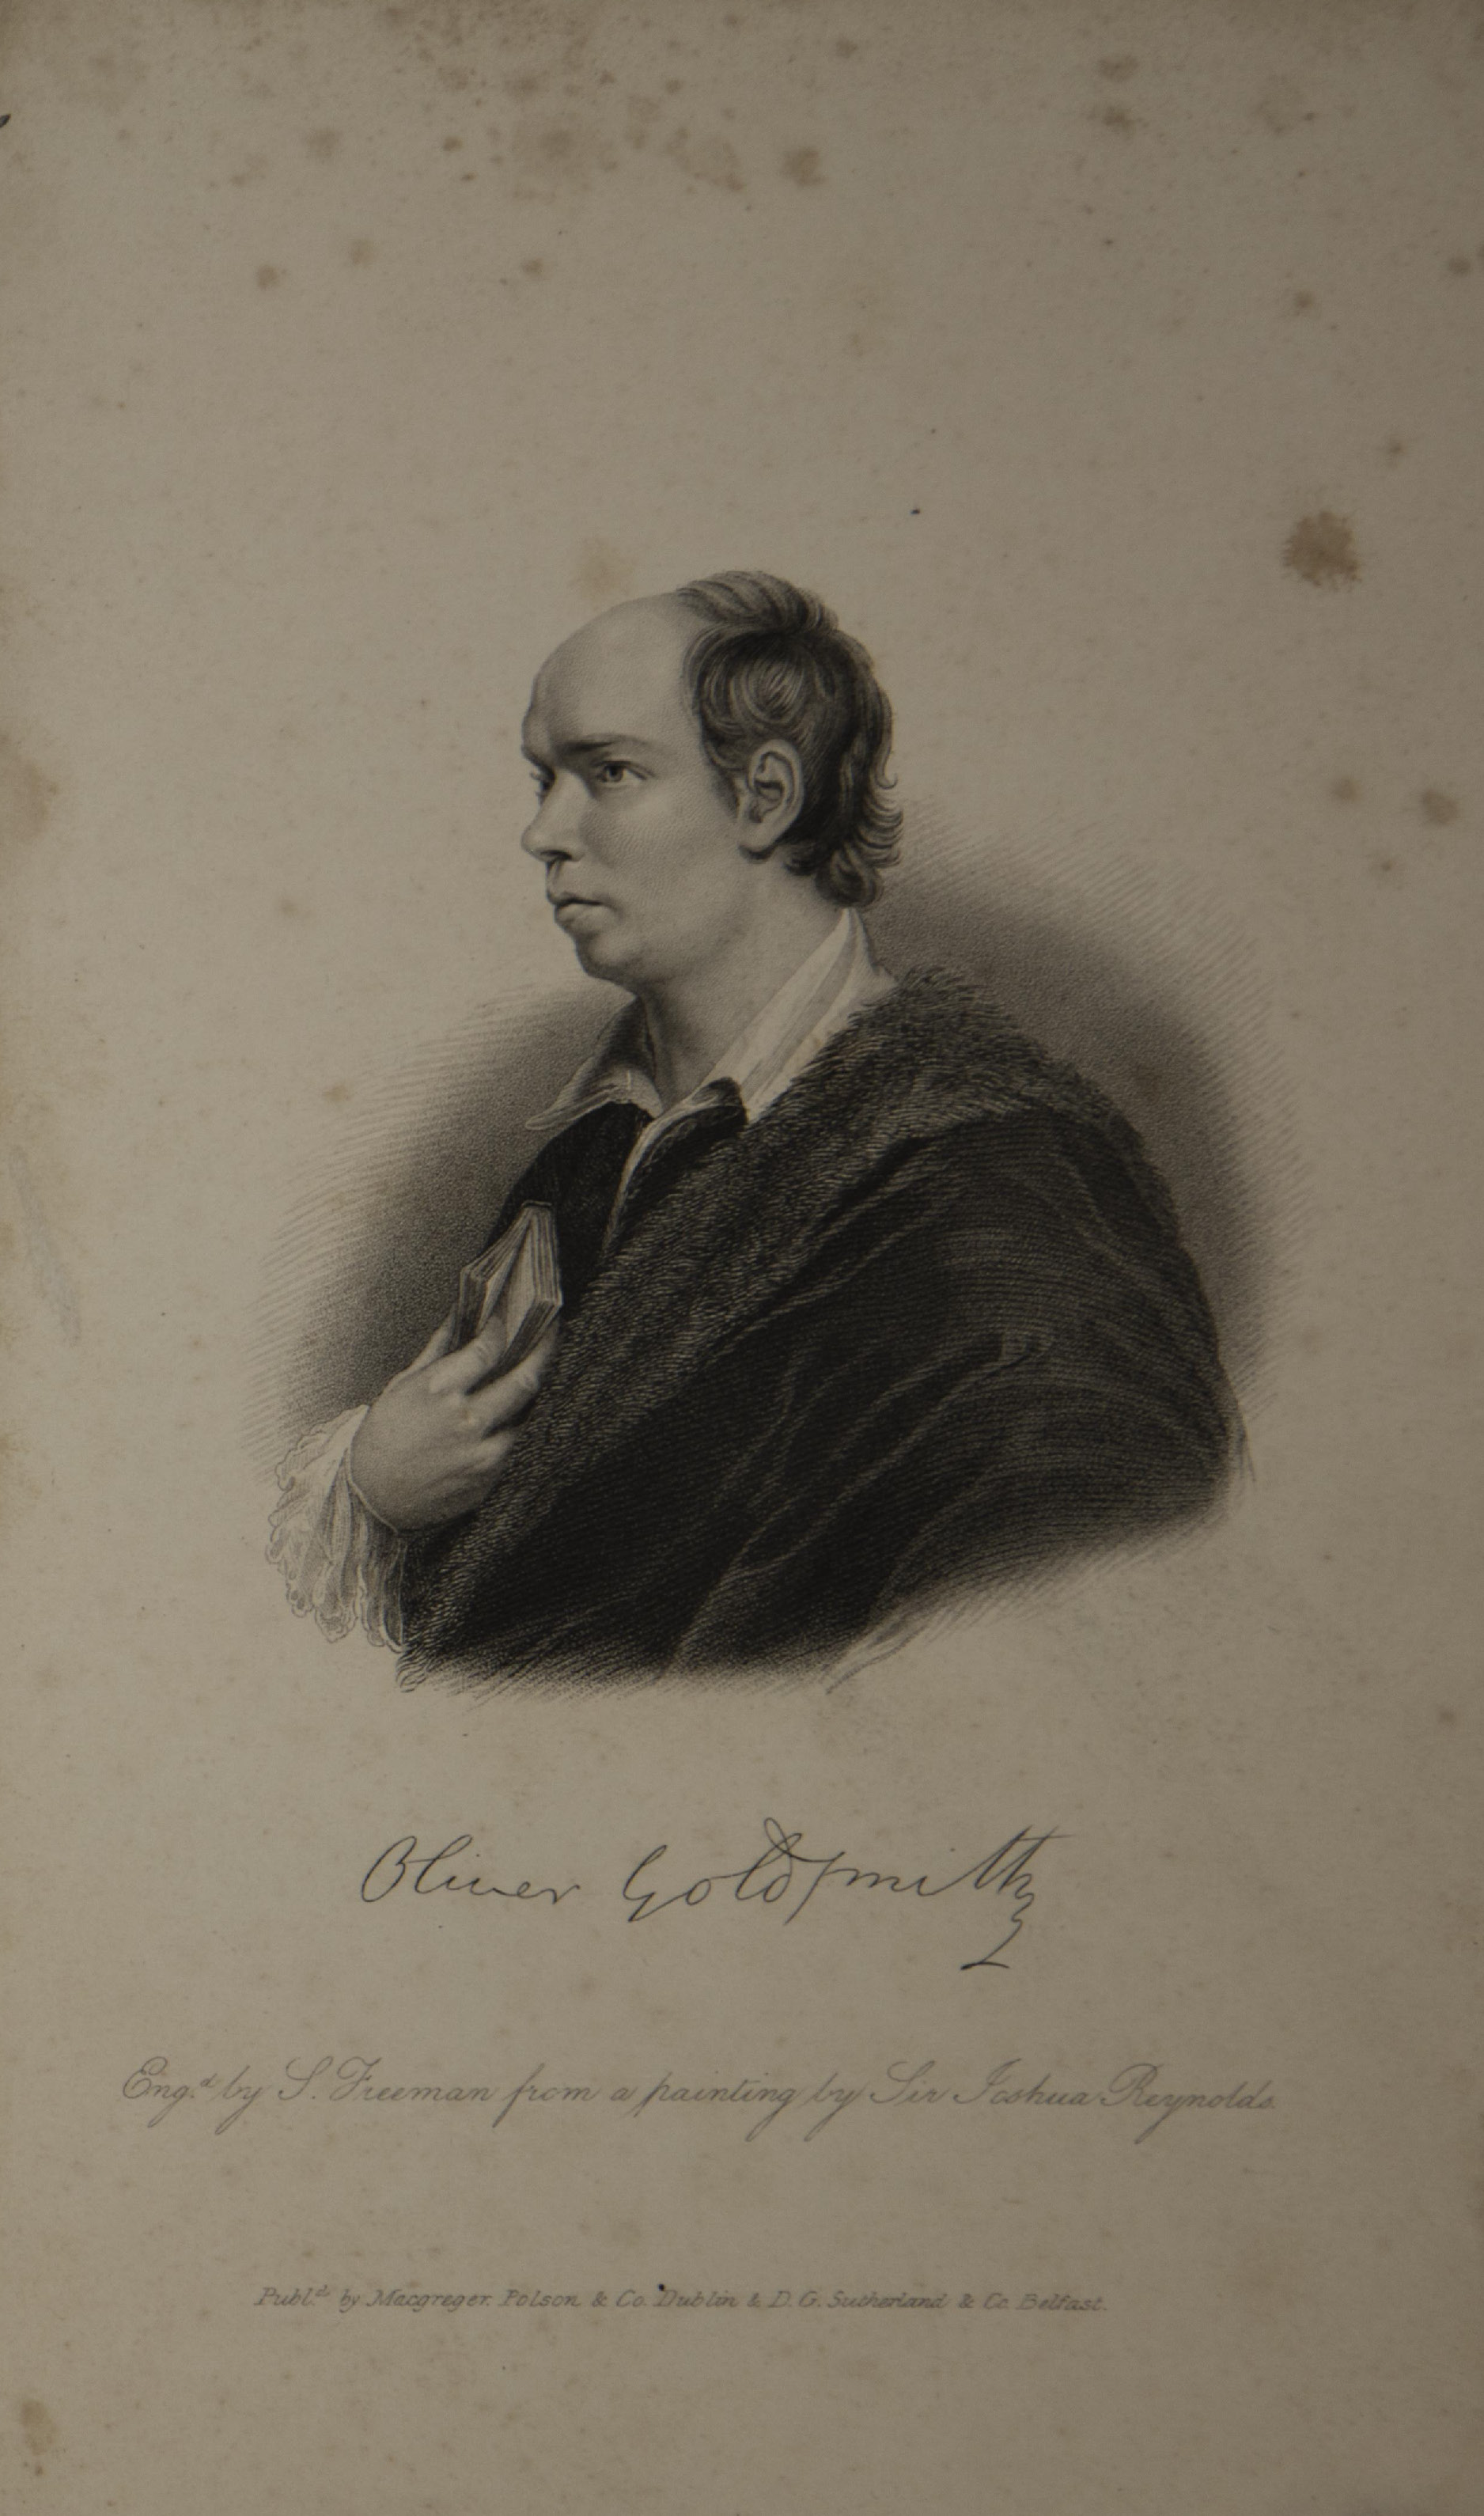 photo of Lives of Illustrious and Distinguished Irishmen, Vol II Part I, 1840